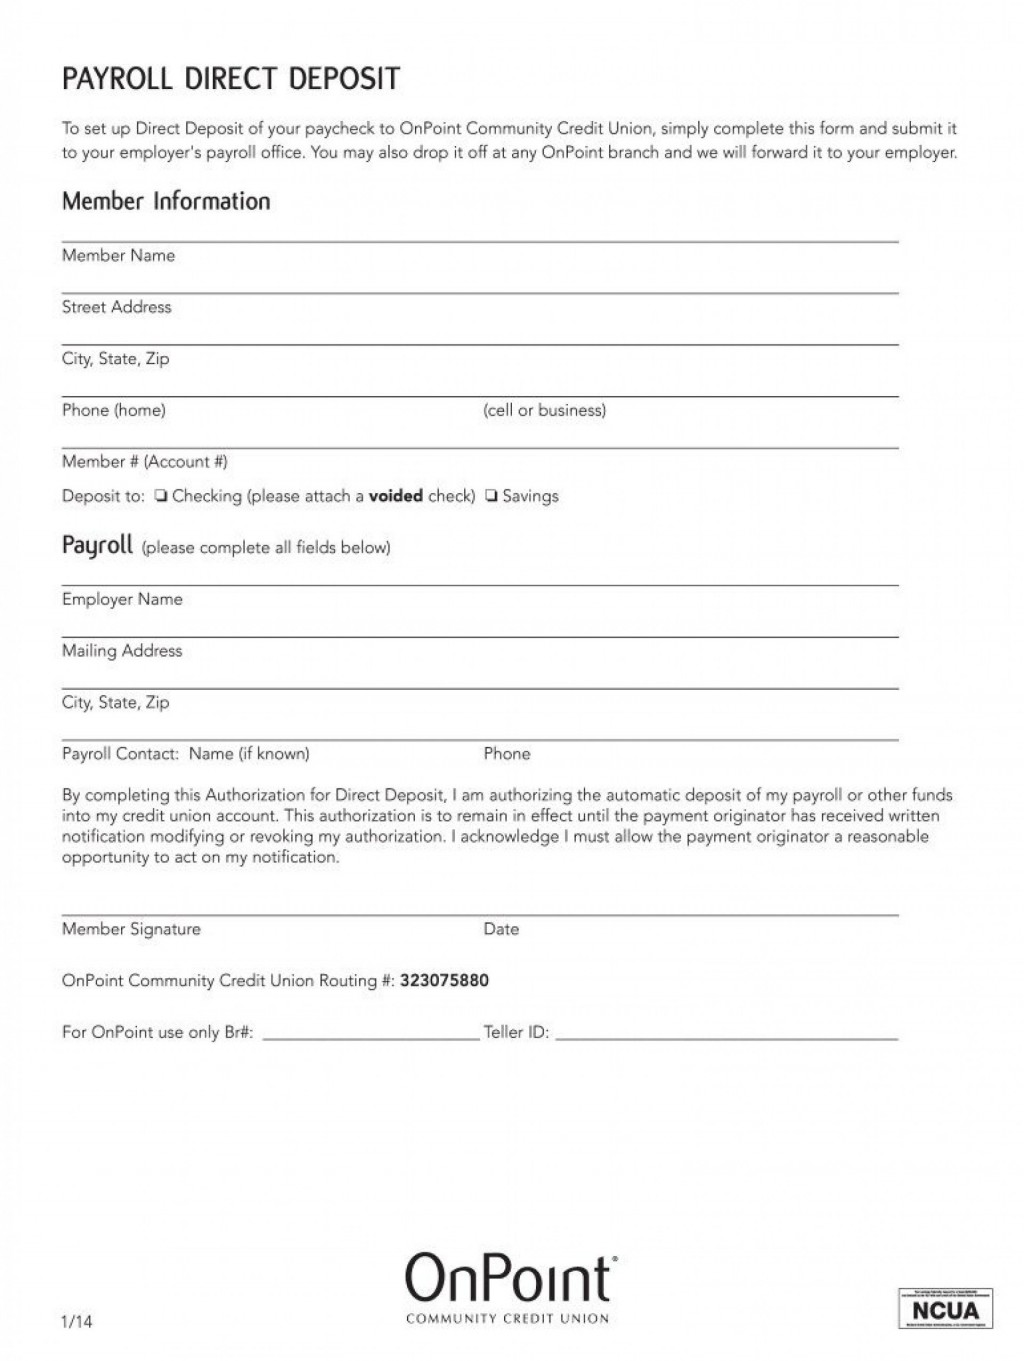 004 Top Direct Deposit Agreement Authorization Form Template Sample Large